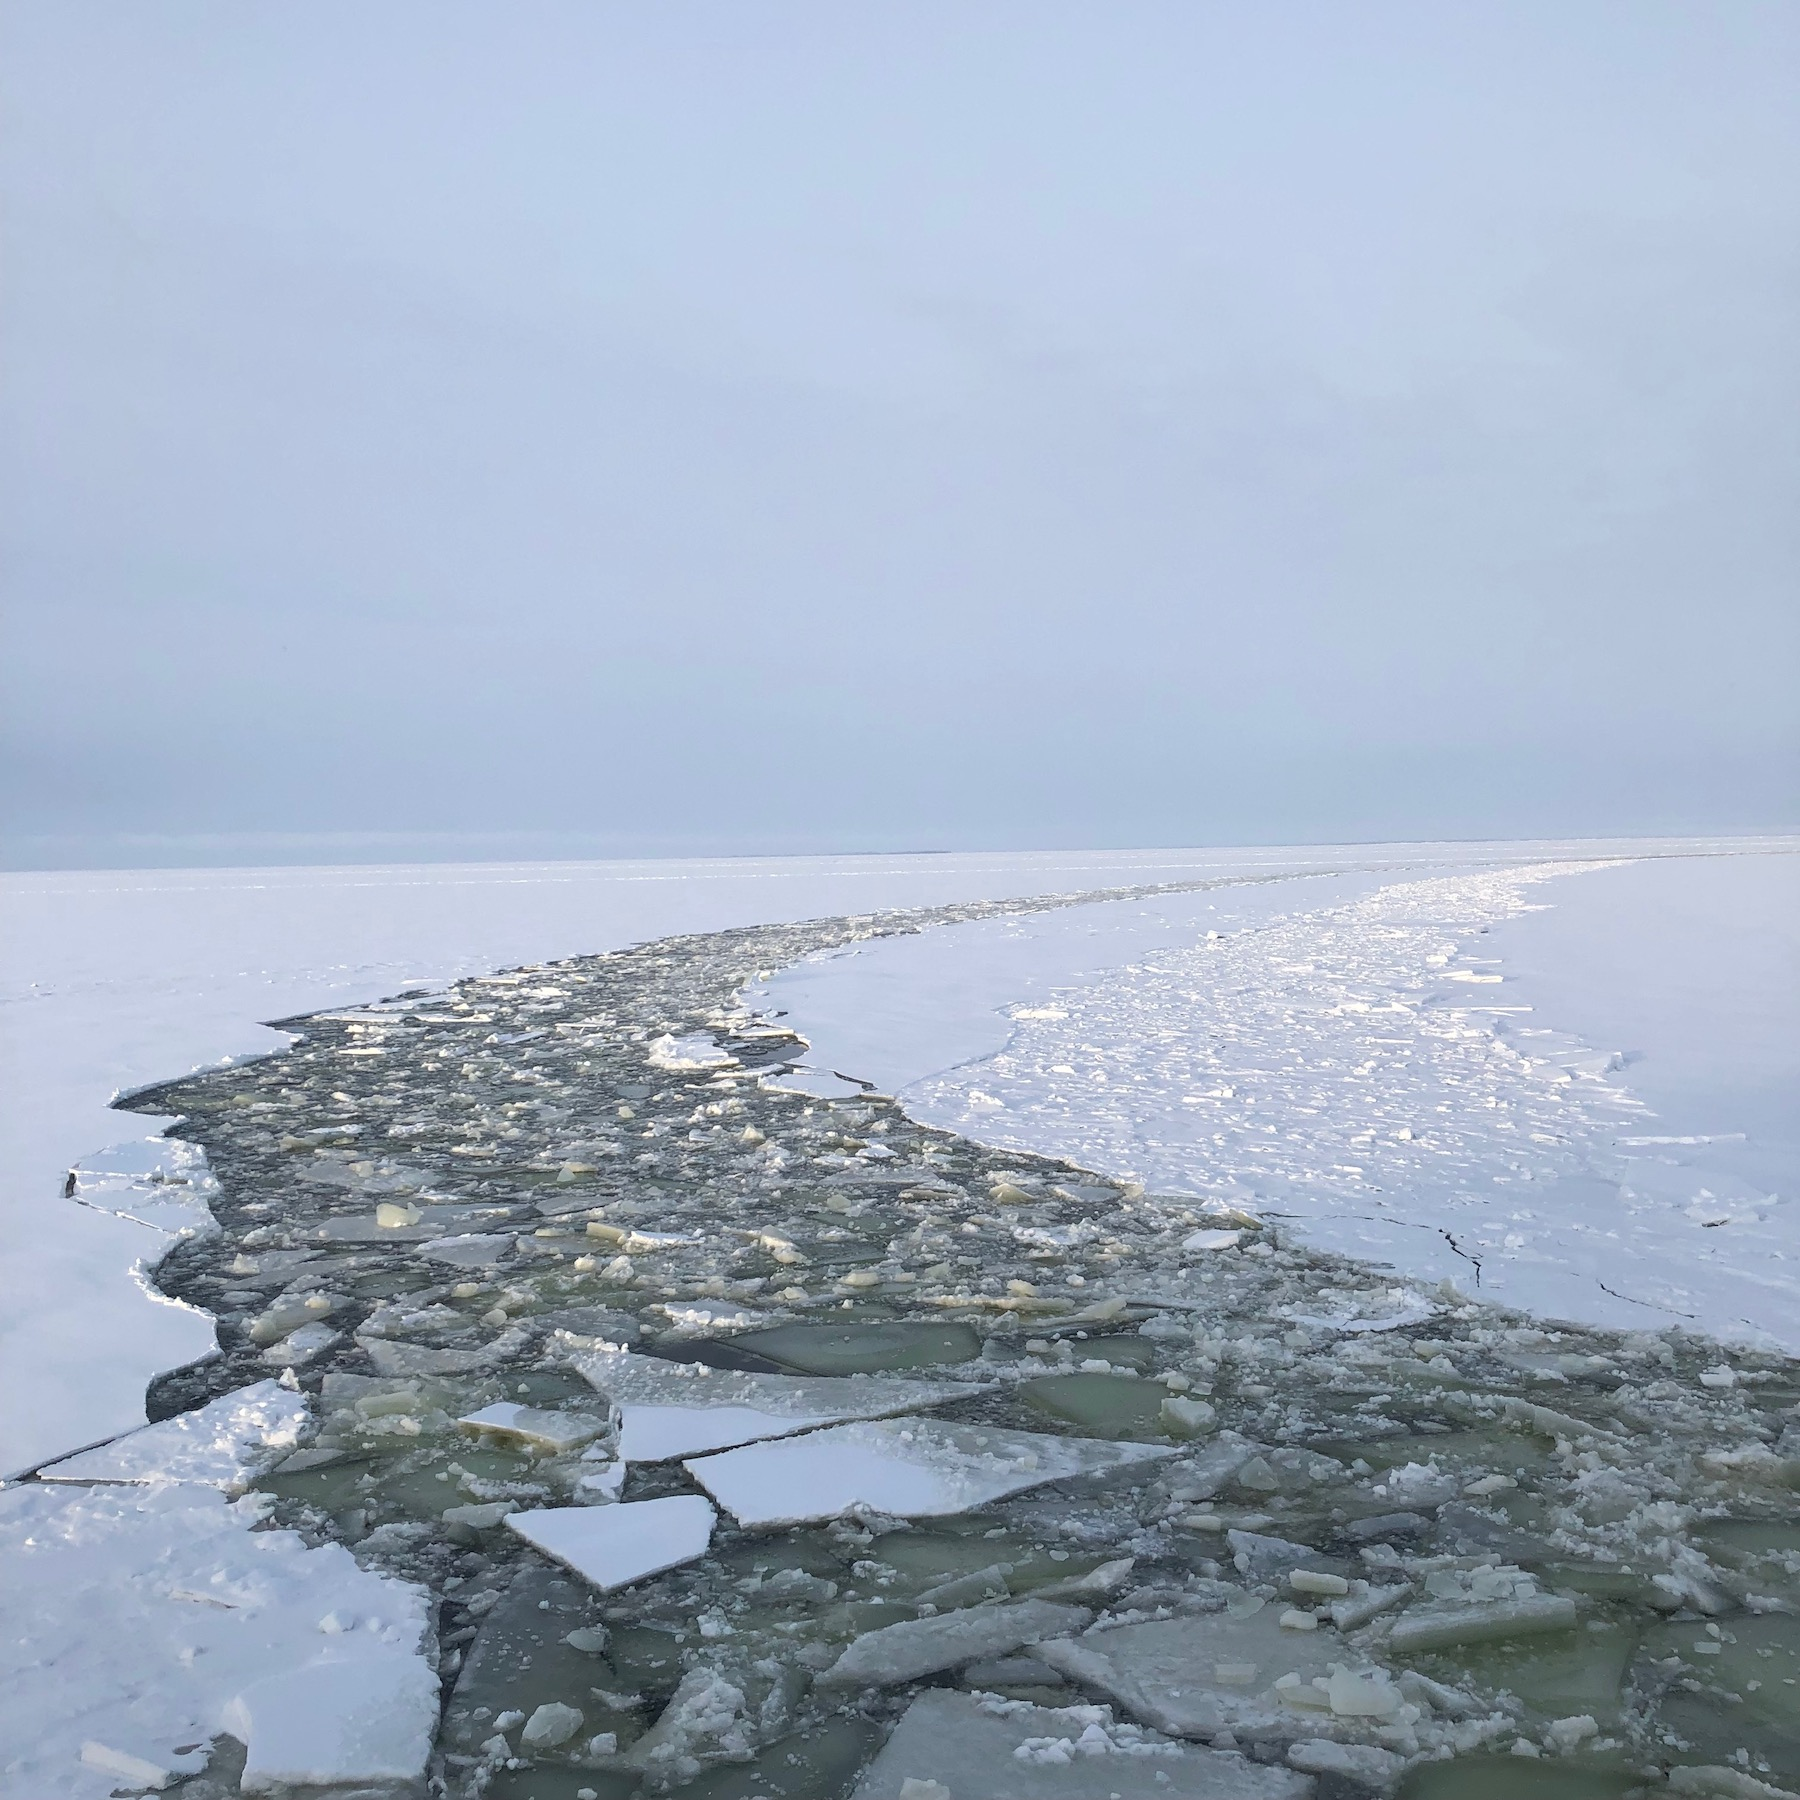 Carole_Glauber_Gulf of Bothnia at the Arctic Circle.jpg